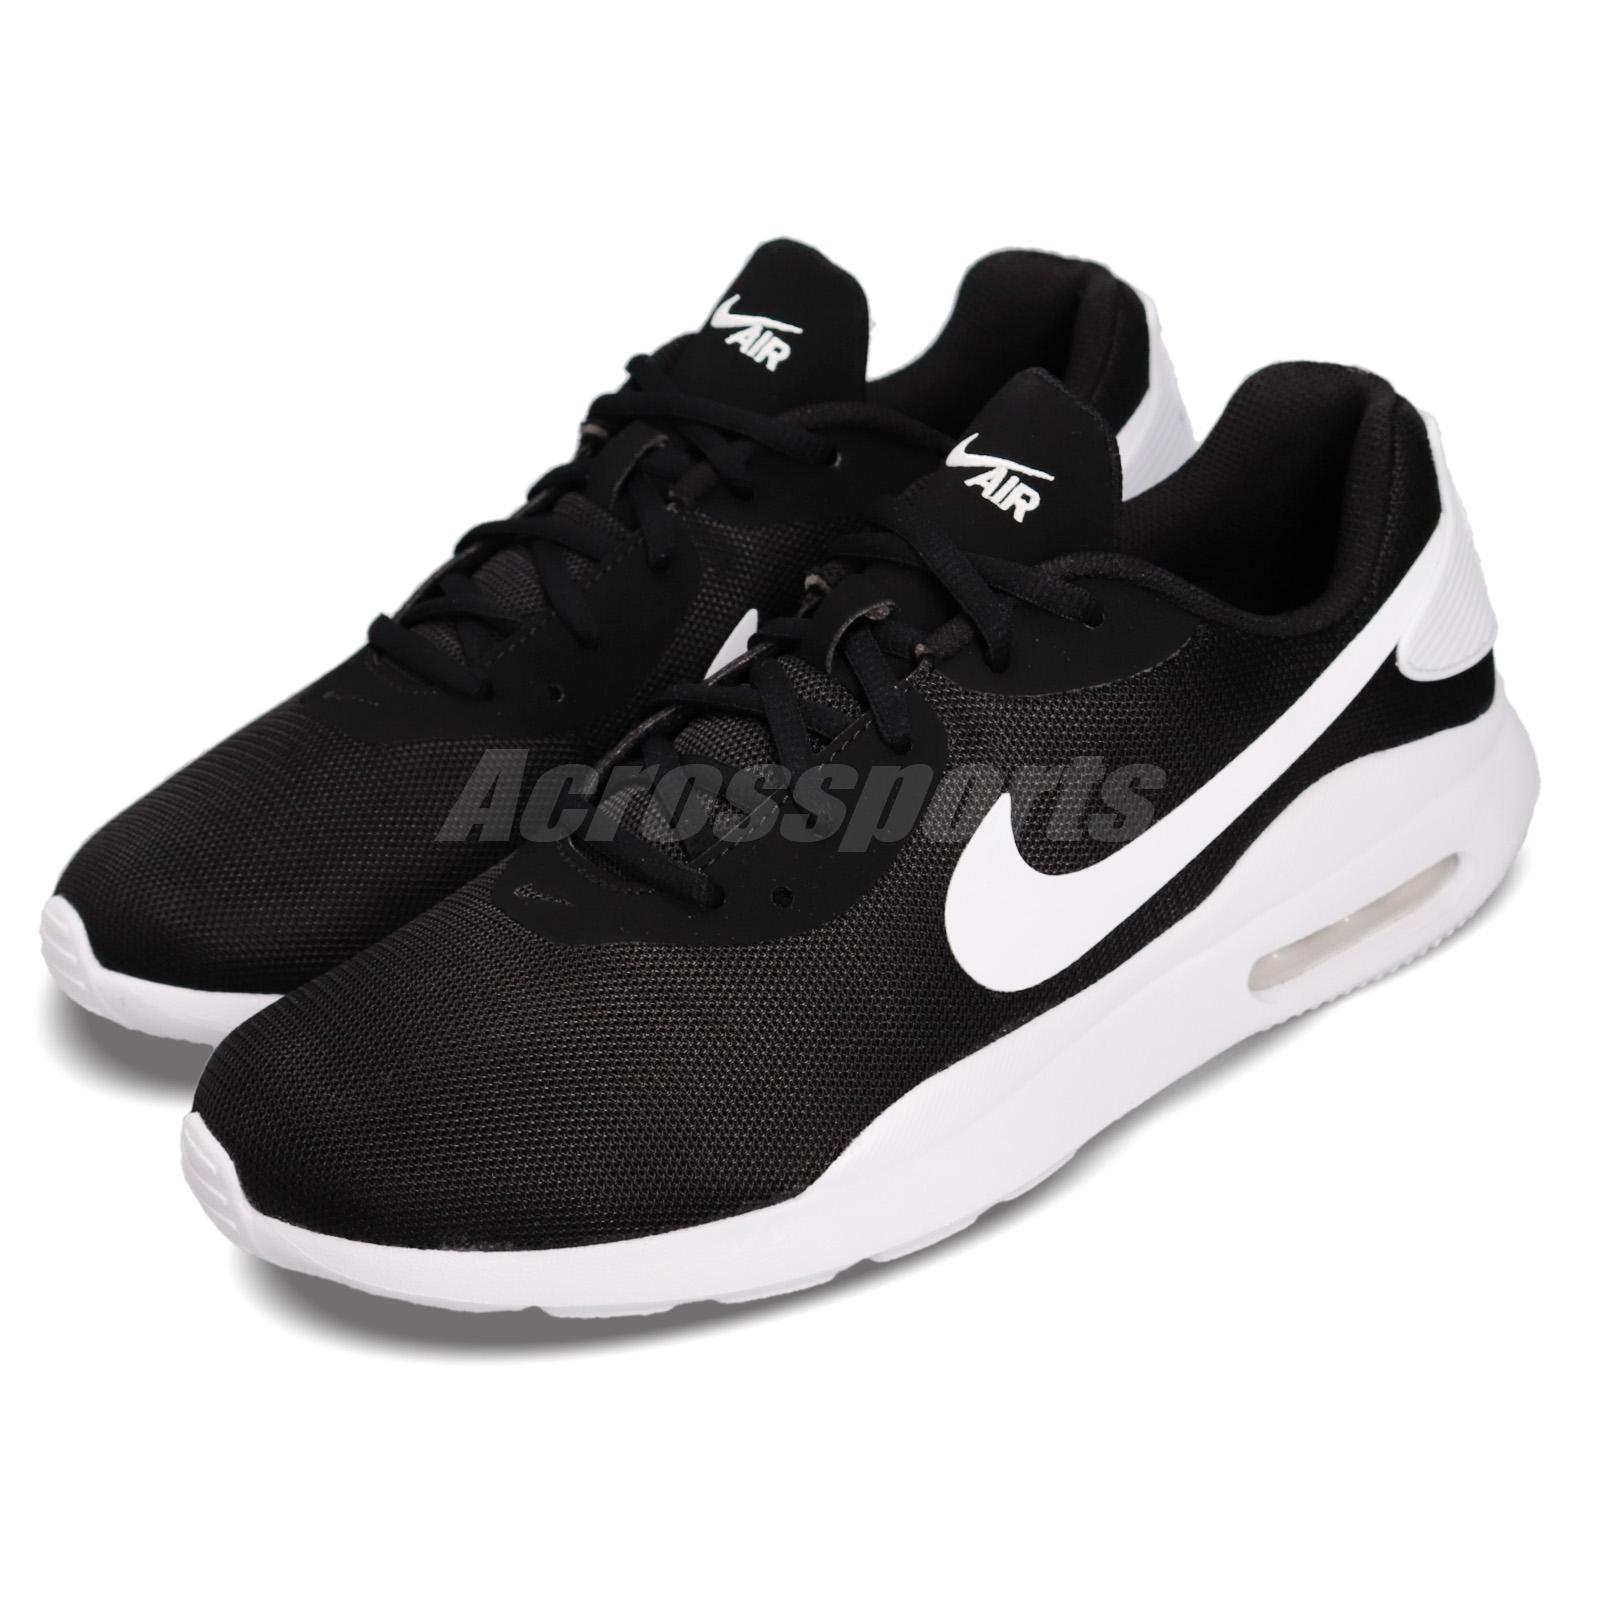 brand new 9ecc7 01741 Details about Nike Air Max Oketo Black White Men Running Casual Shoes  Sneakers AQ2235-002